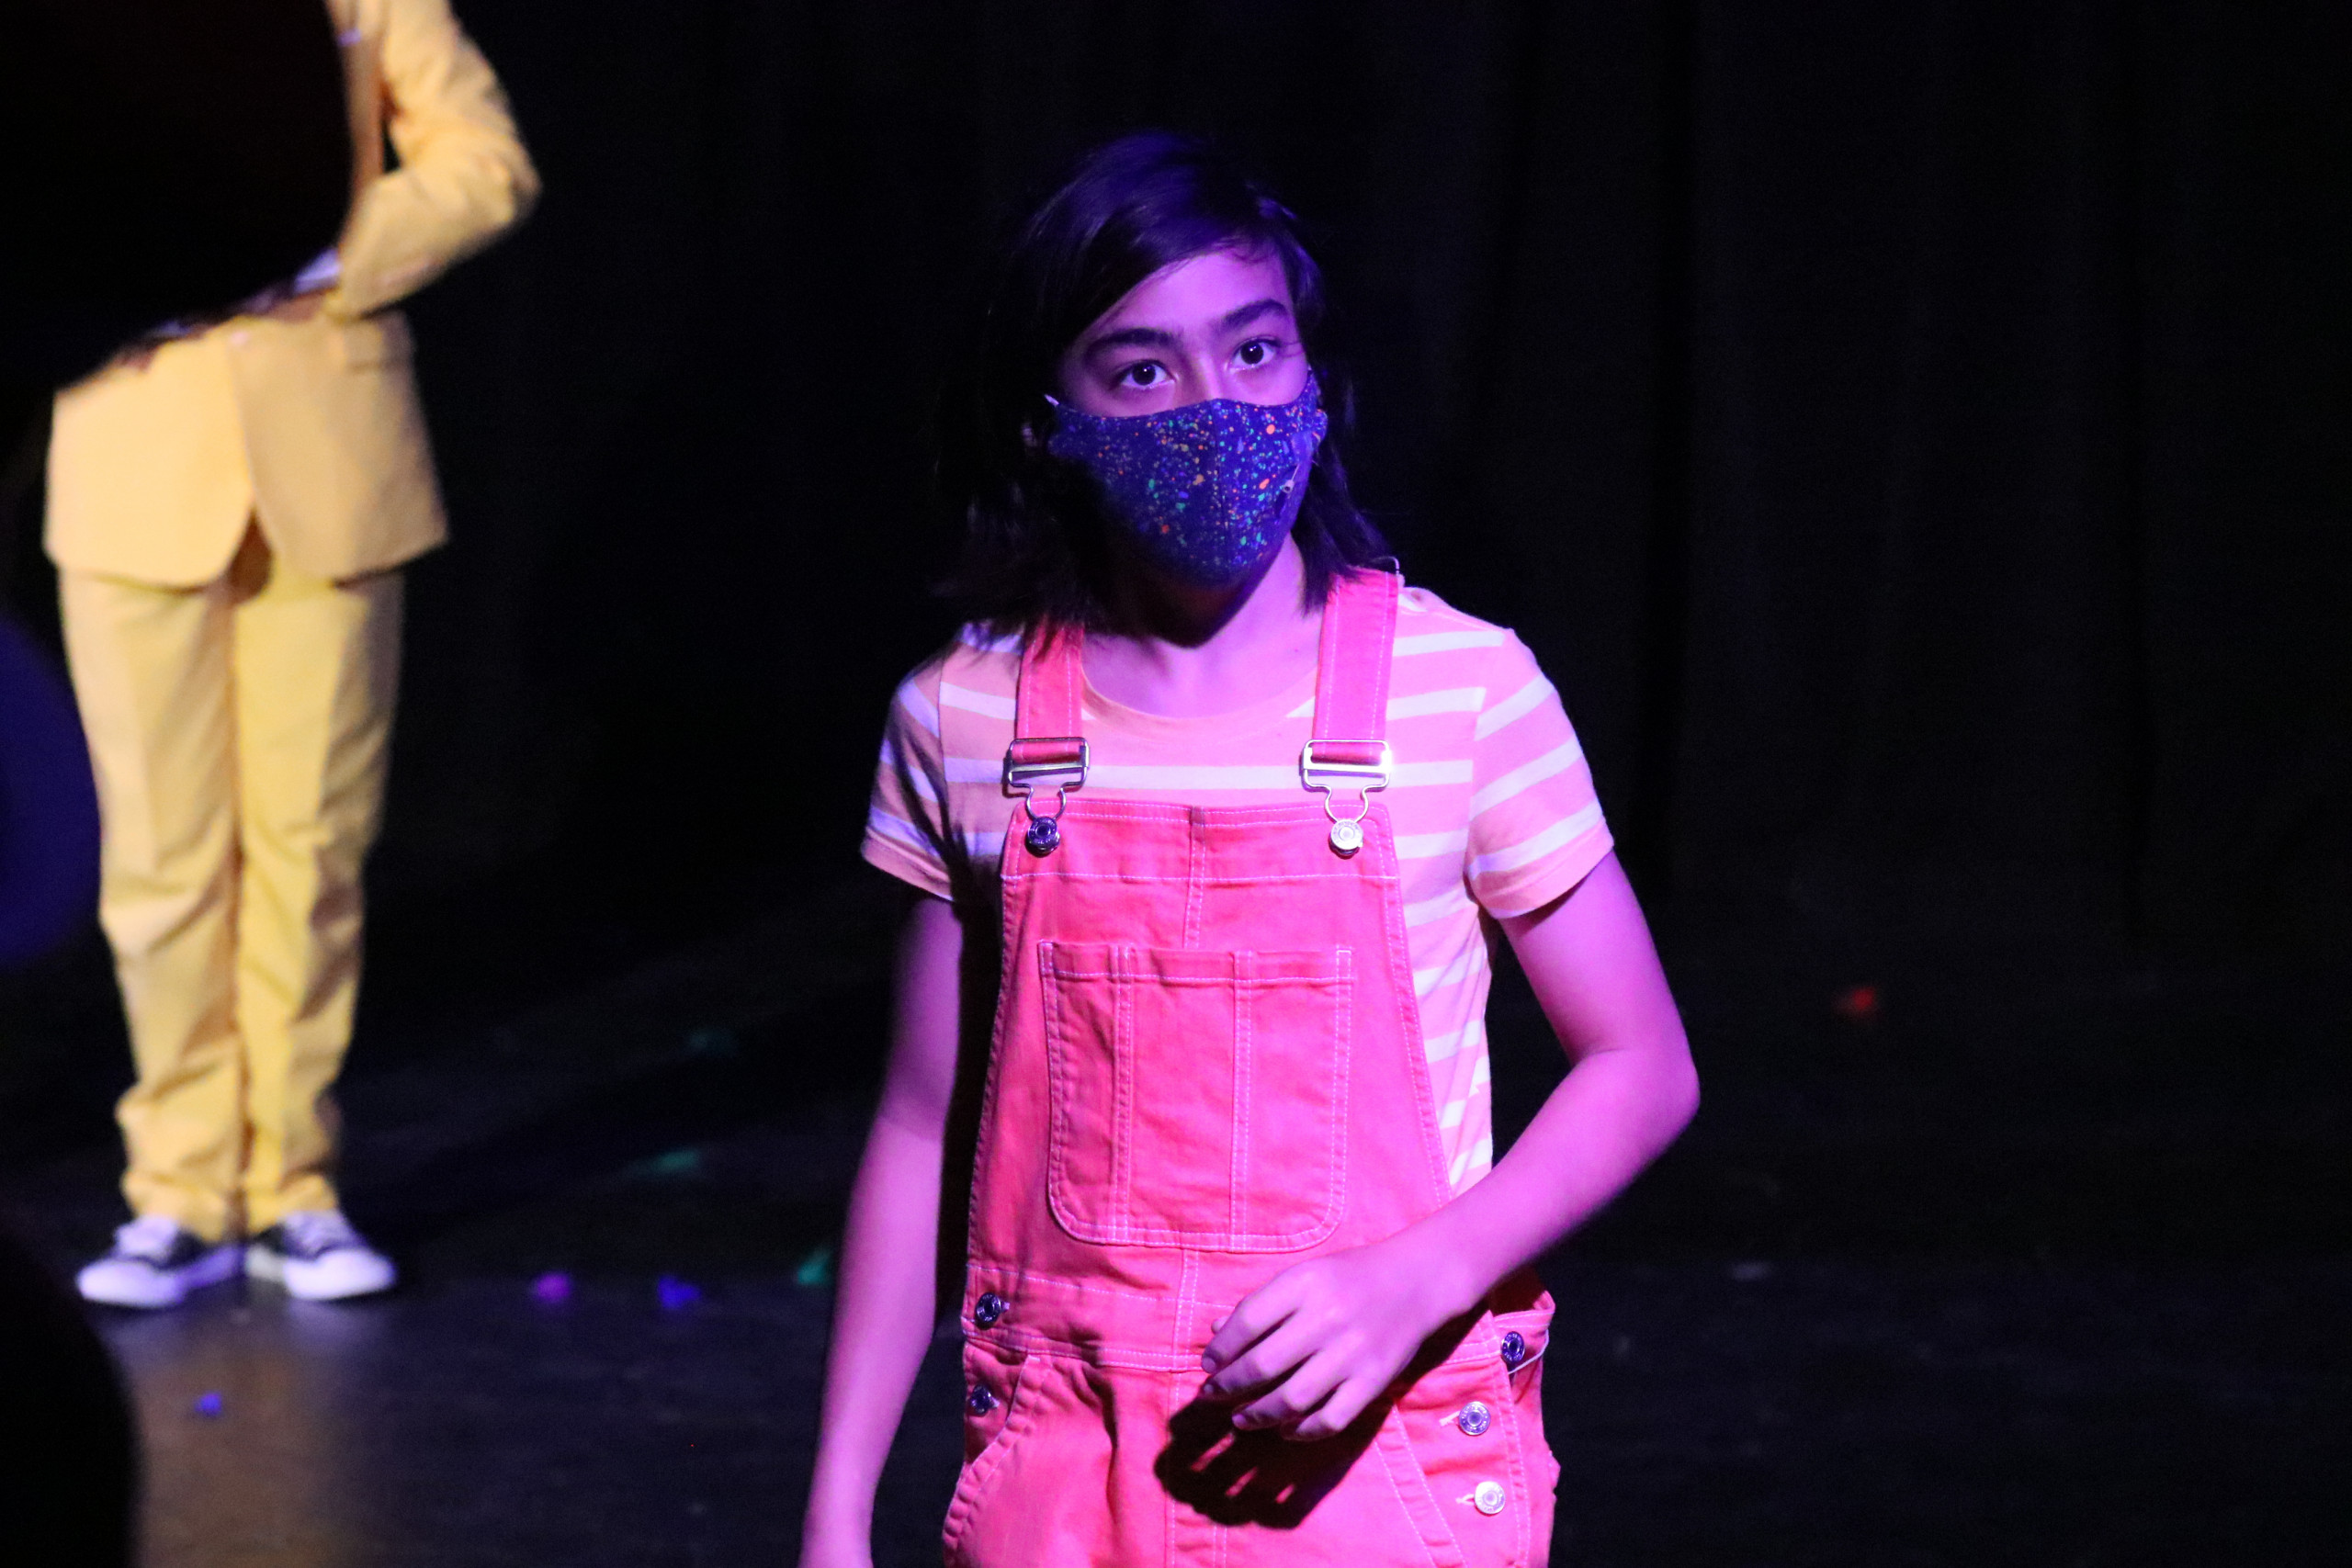 NTPA Actor performing in safety mask